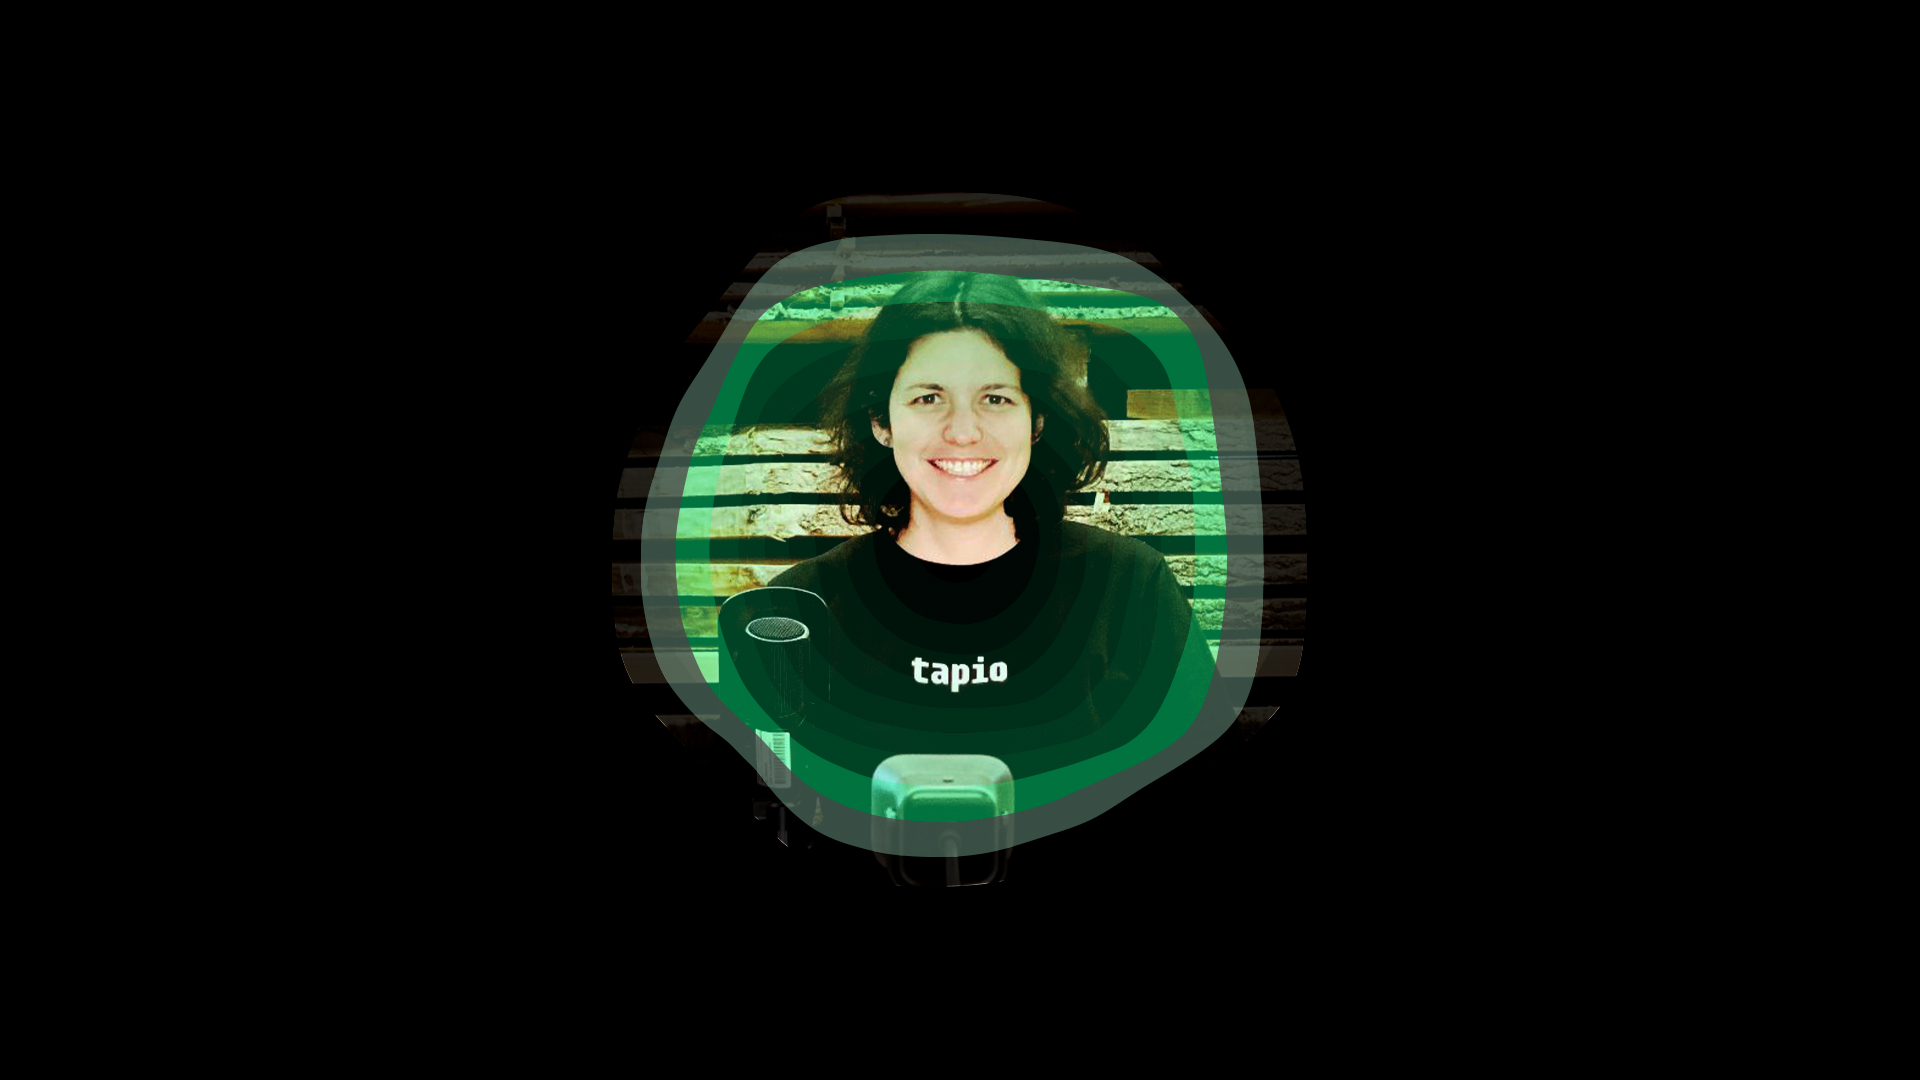 Julia-tapio-team-product-managerin